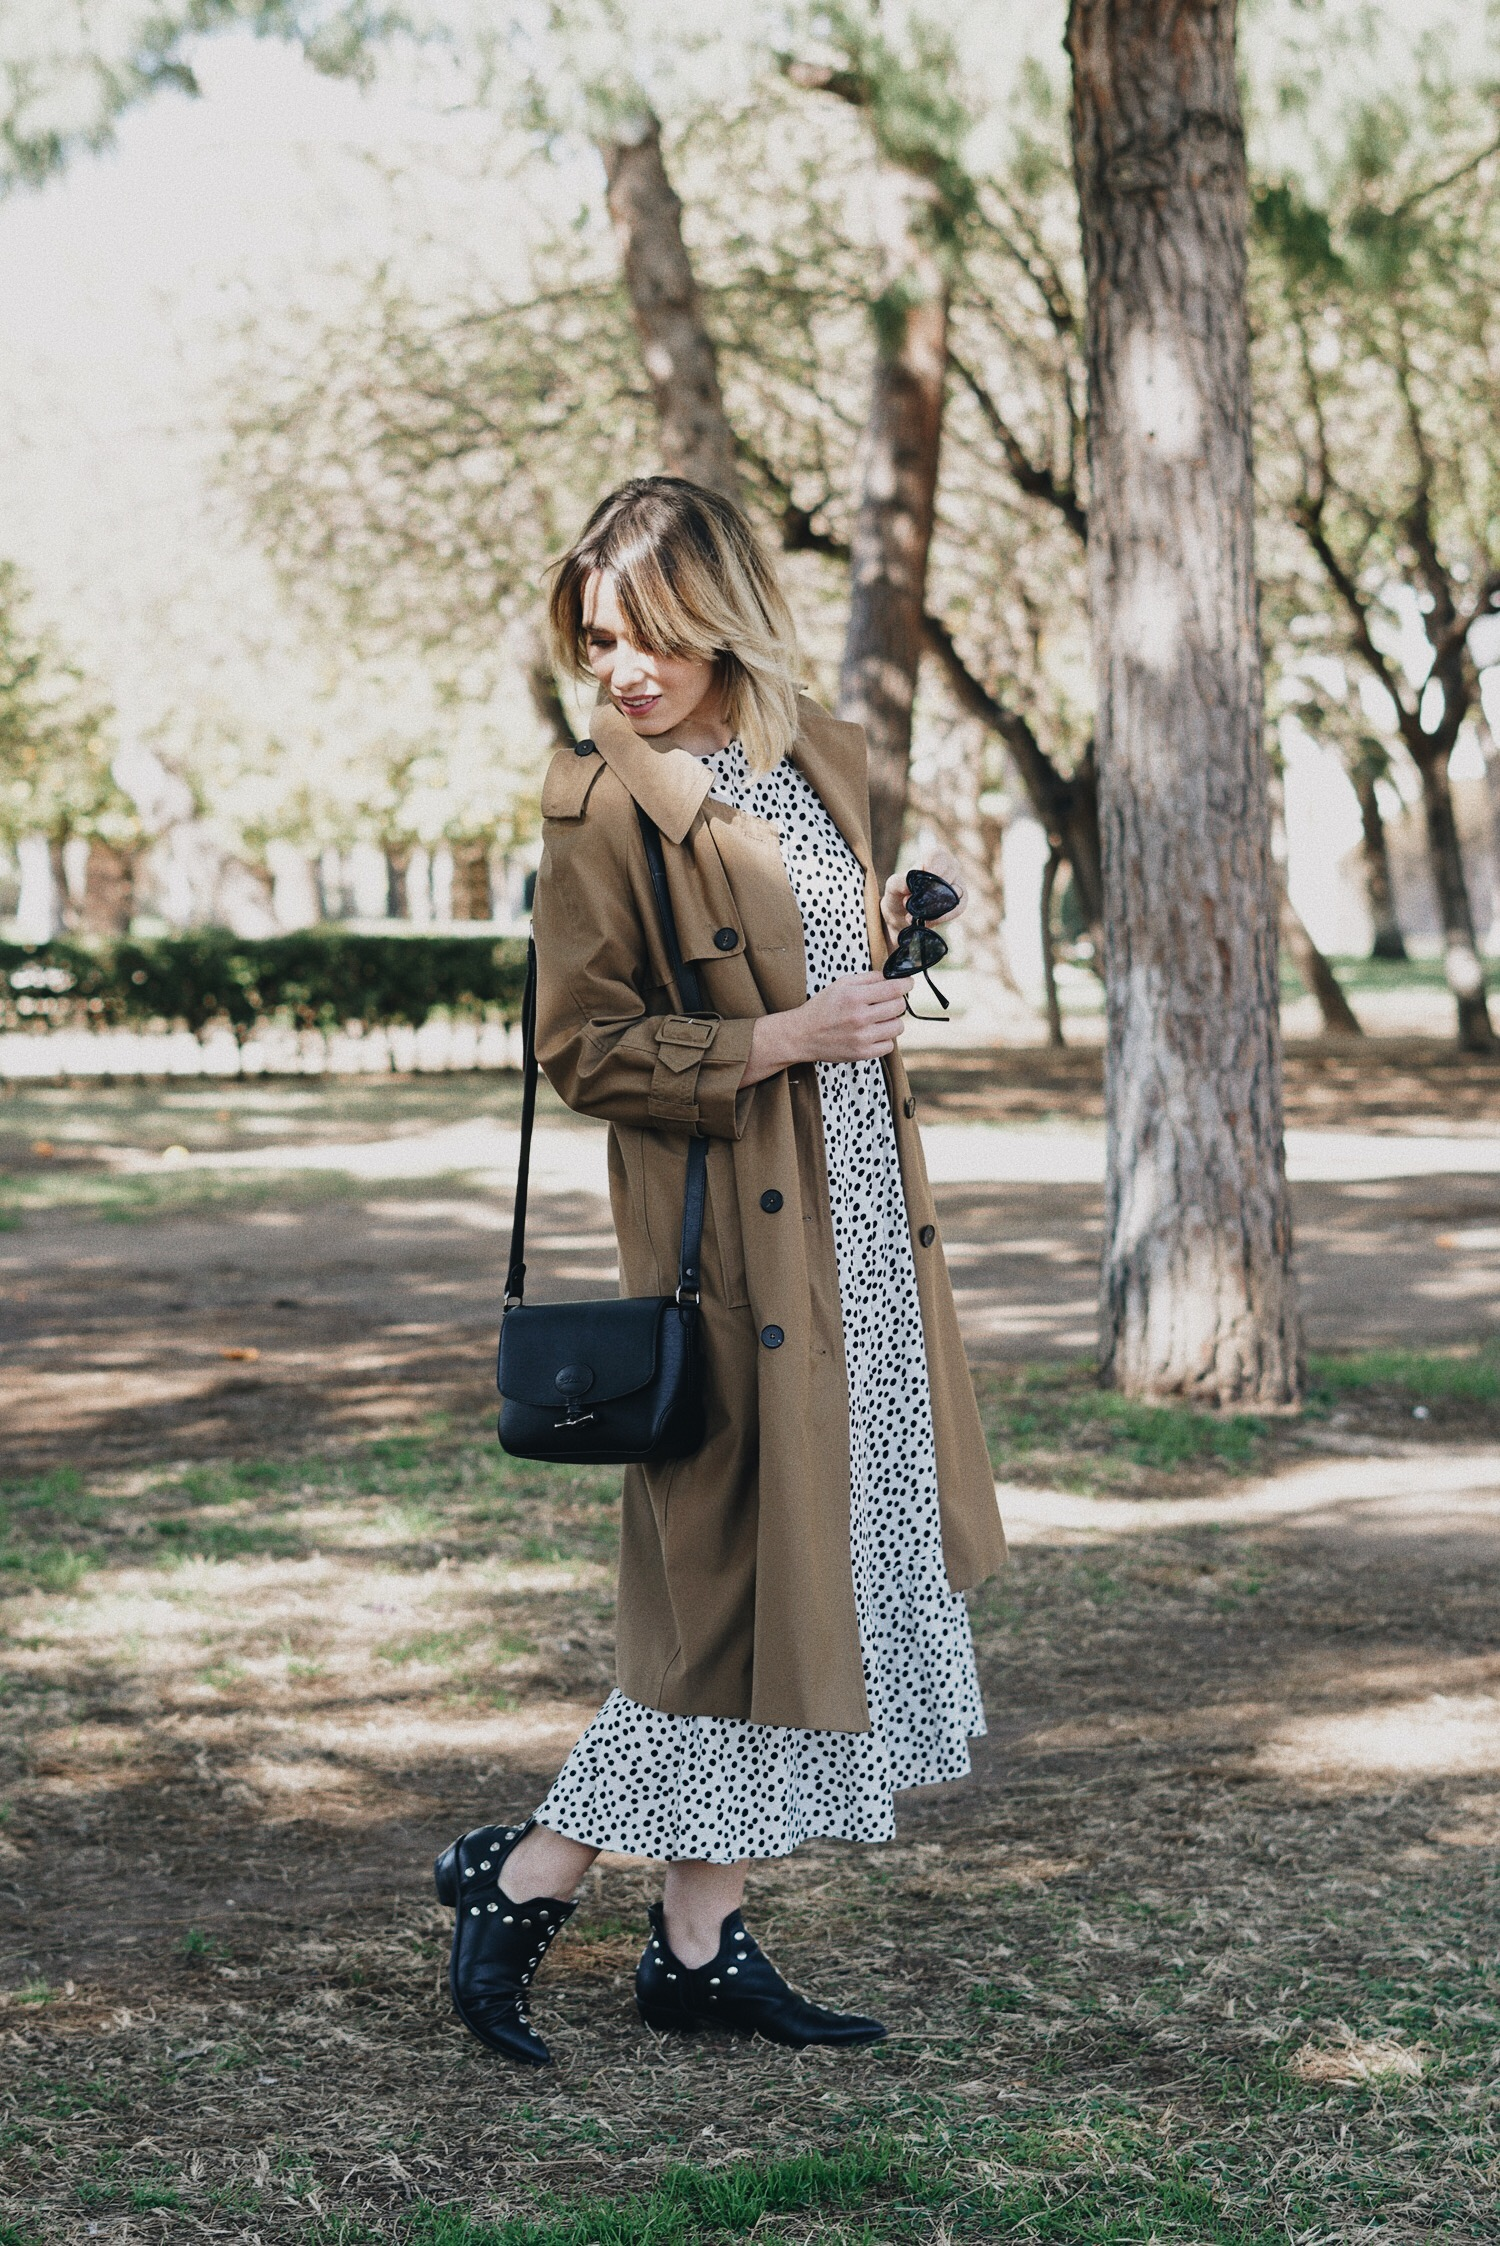 DRESS & TRENCH-21576-macarenagea